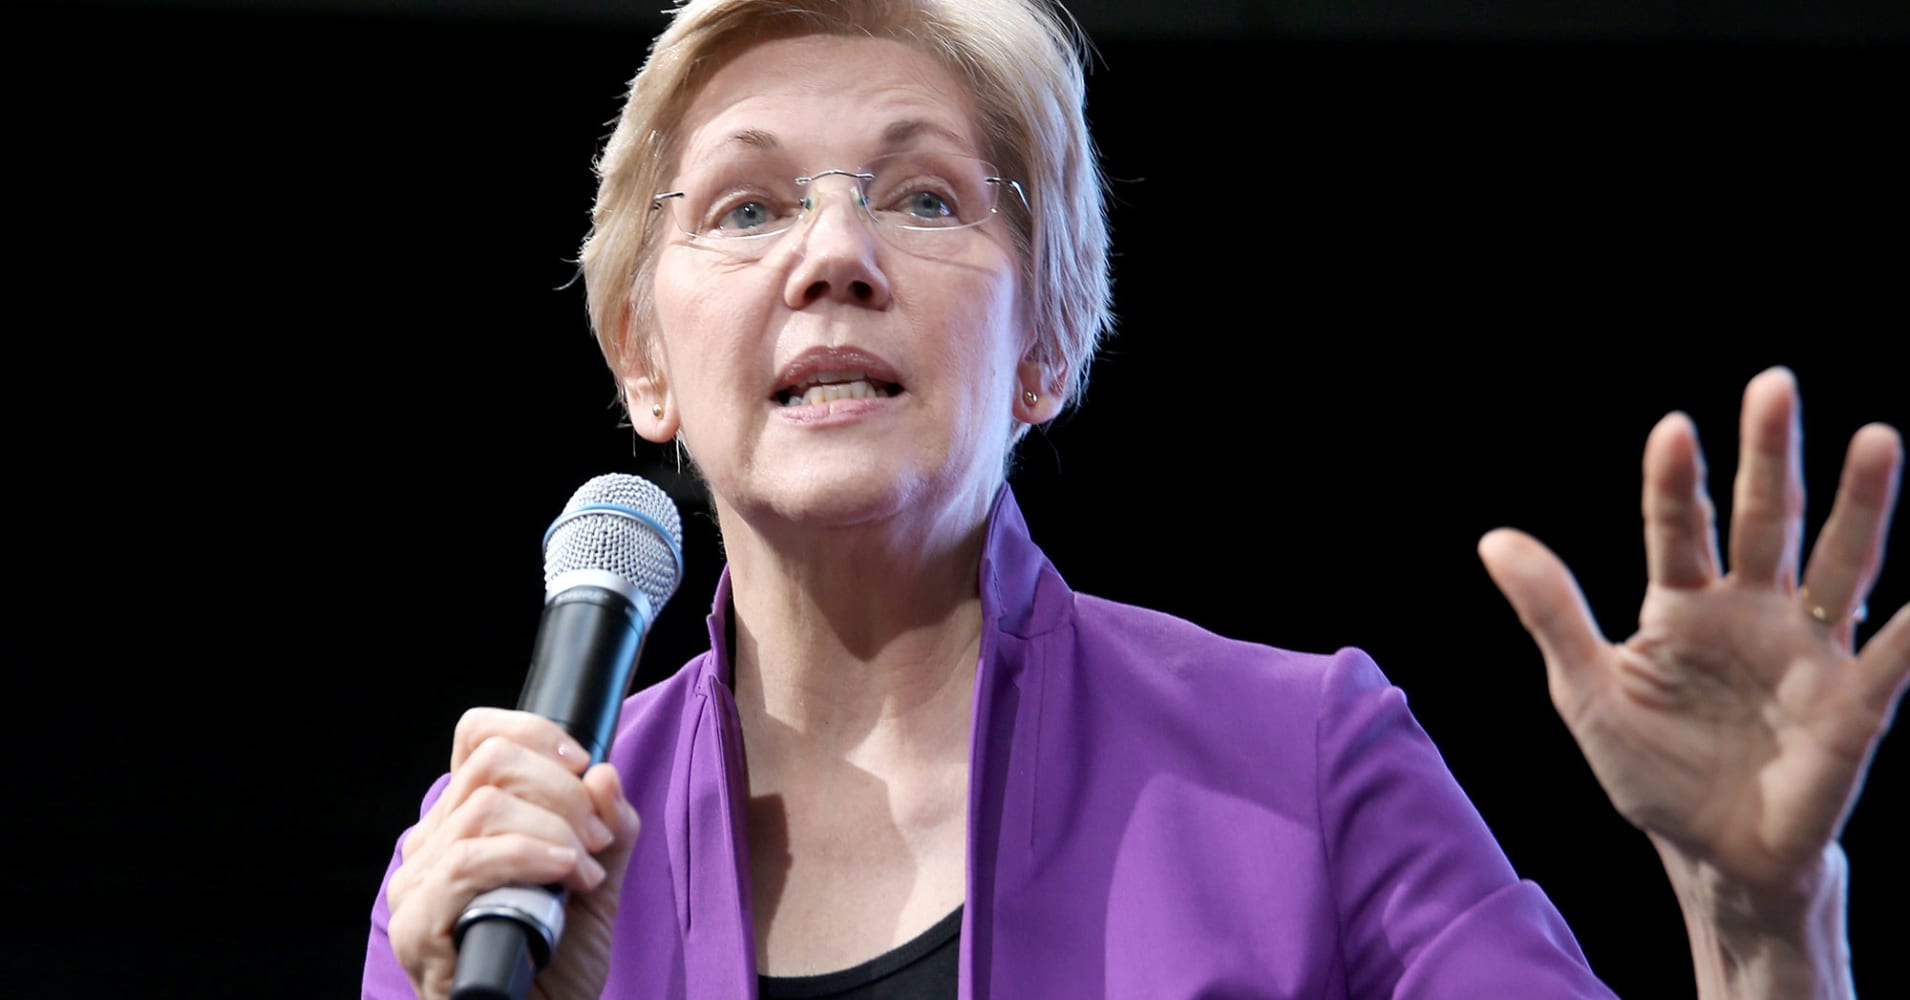 Sen. Warren tells Cramer about her plan to make companies and CEOs more accountable to employees